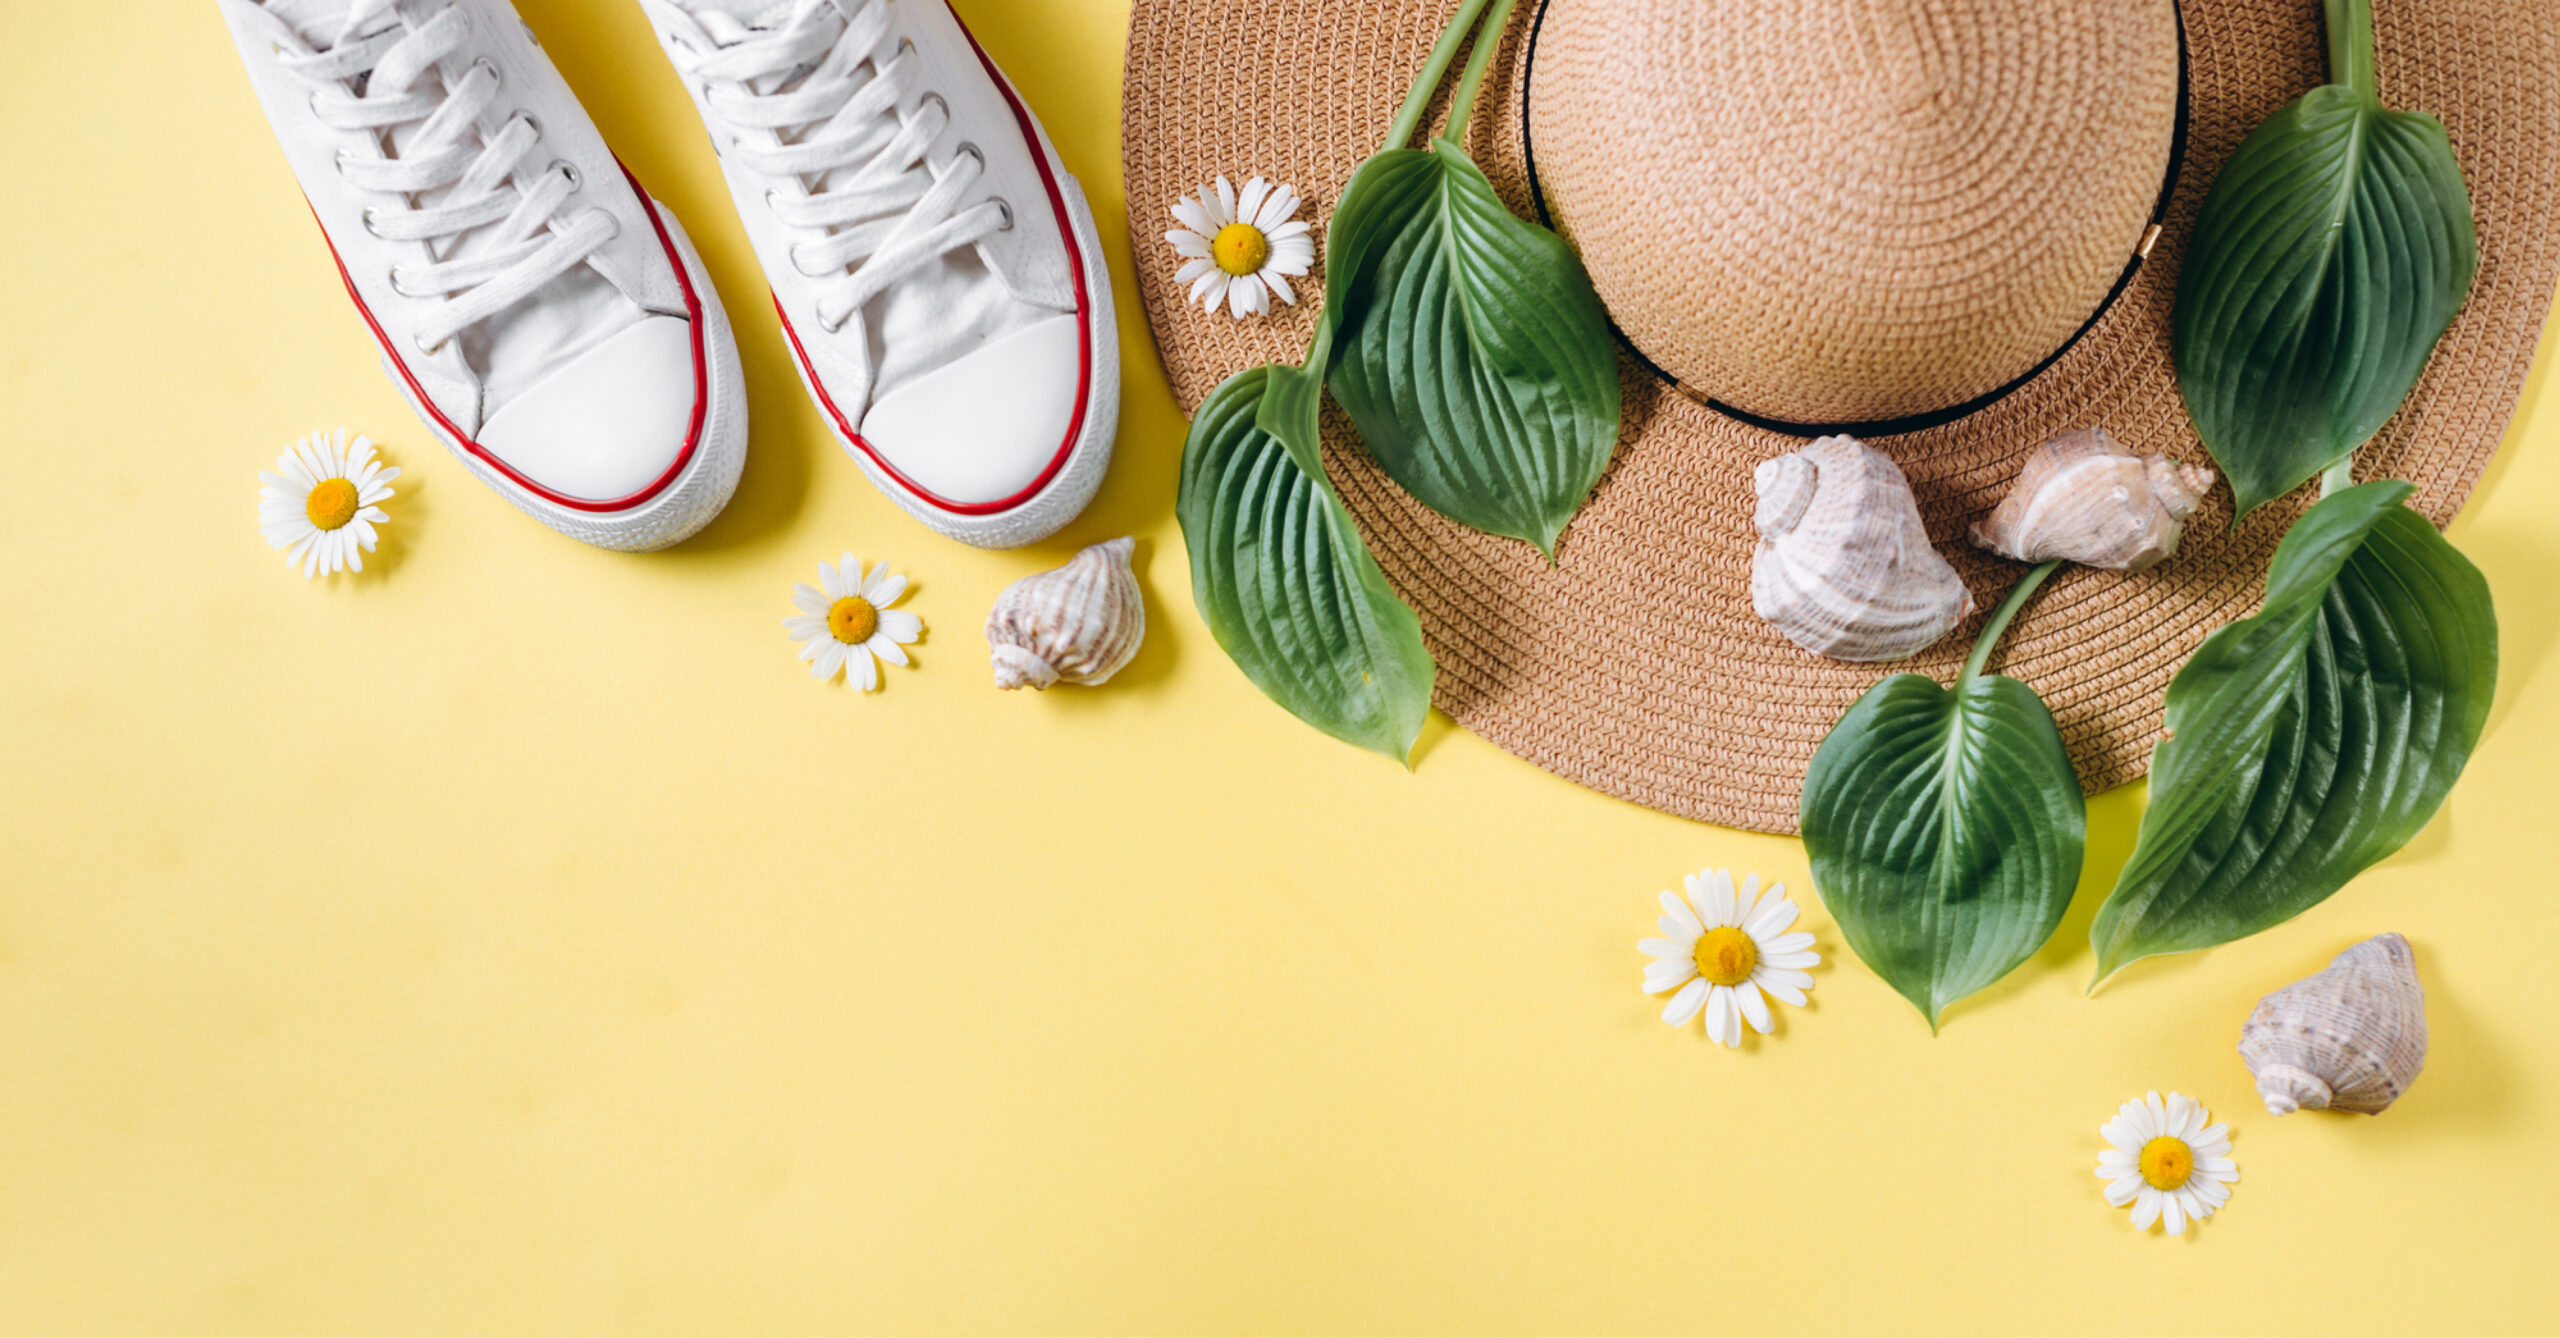 Steps For Retailers To Prepare For Summer